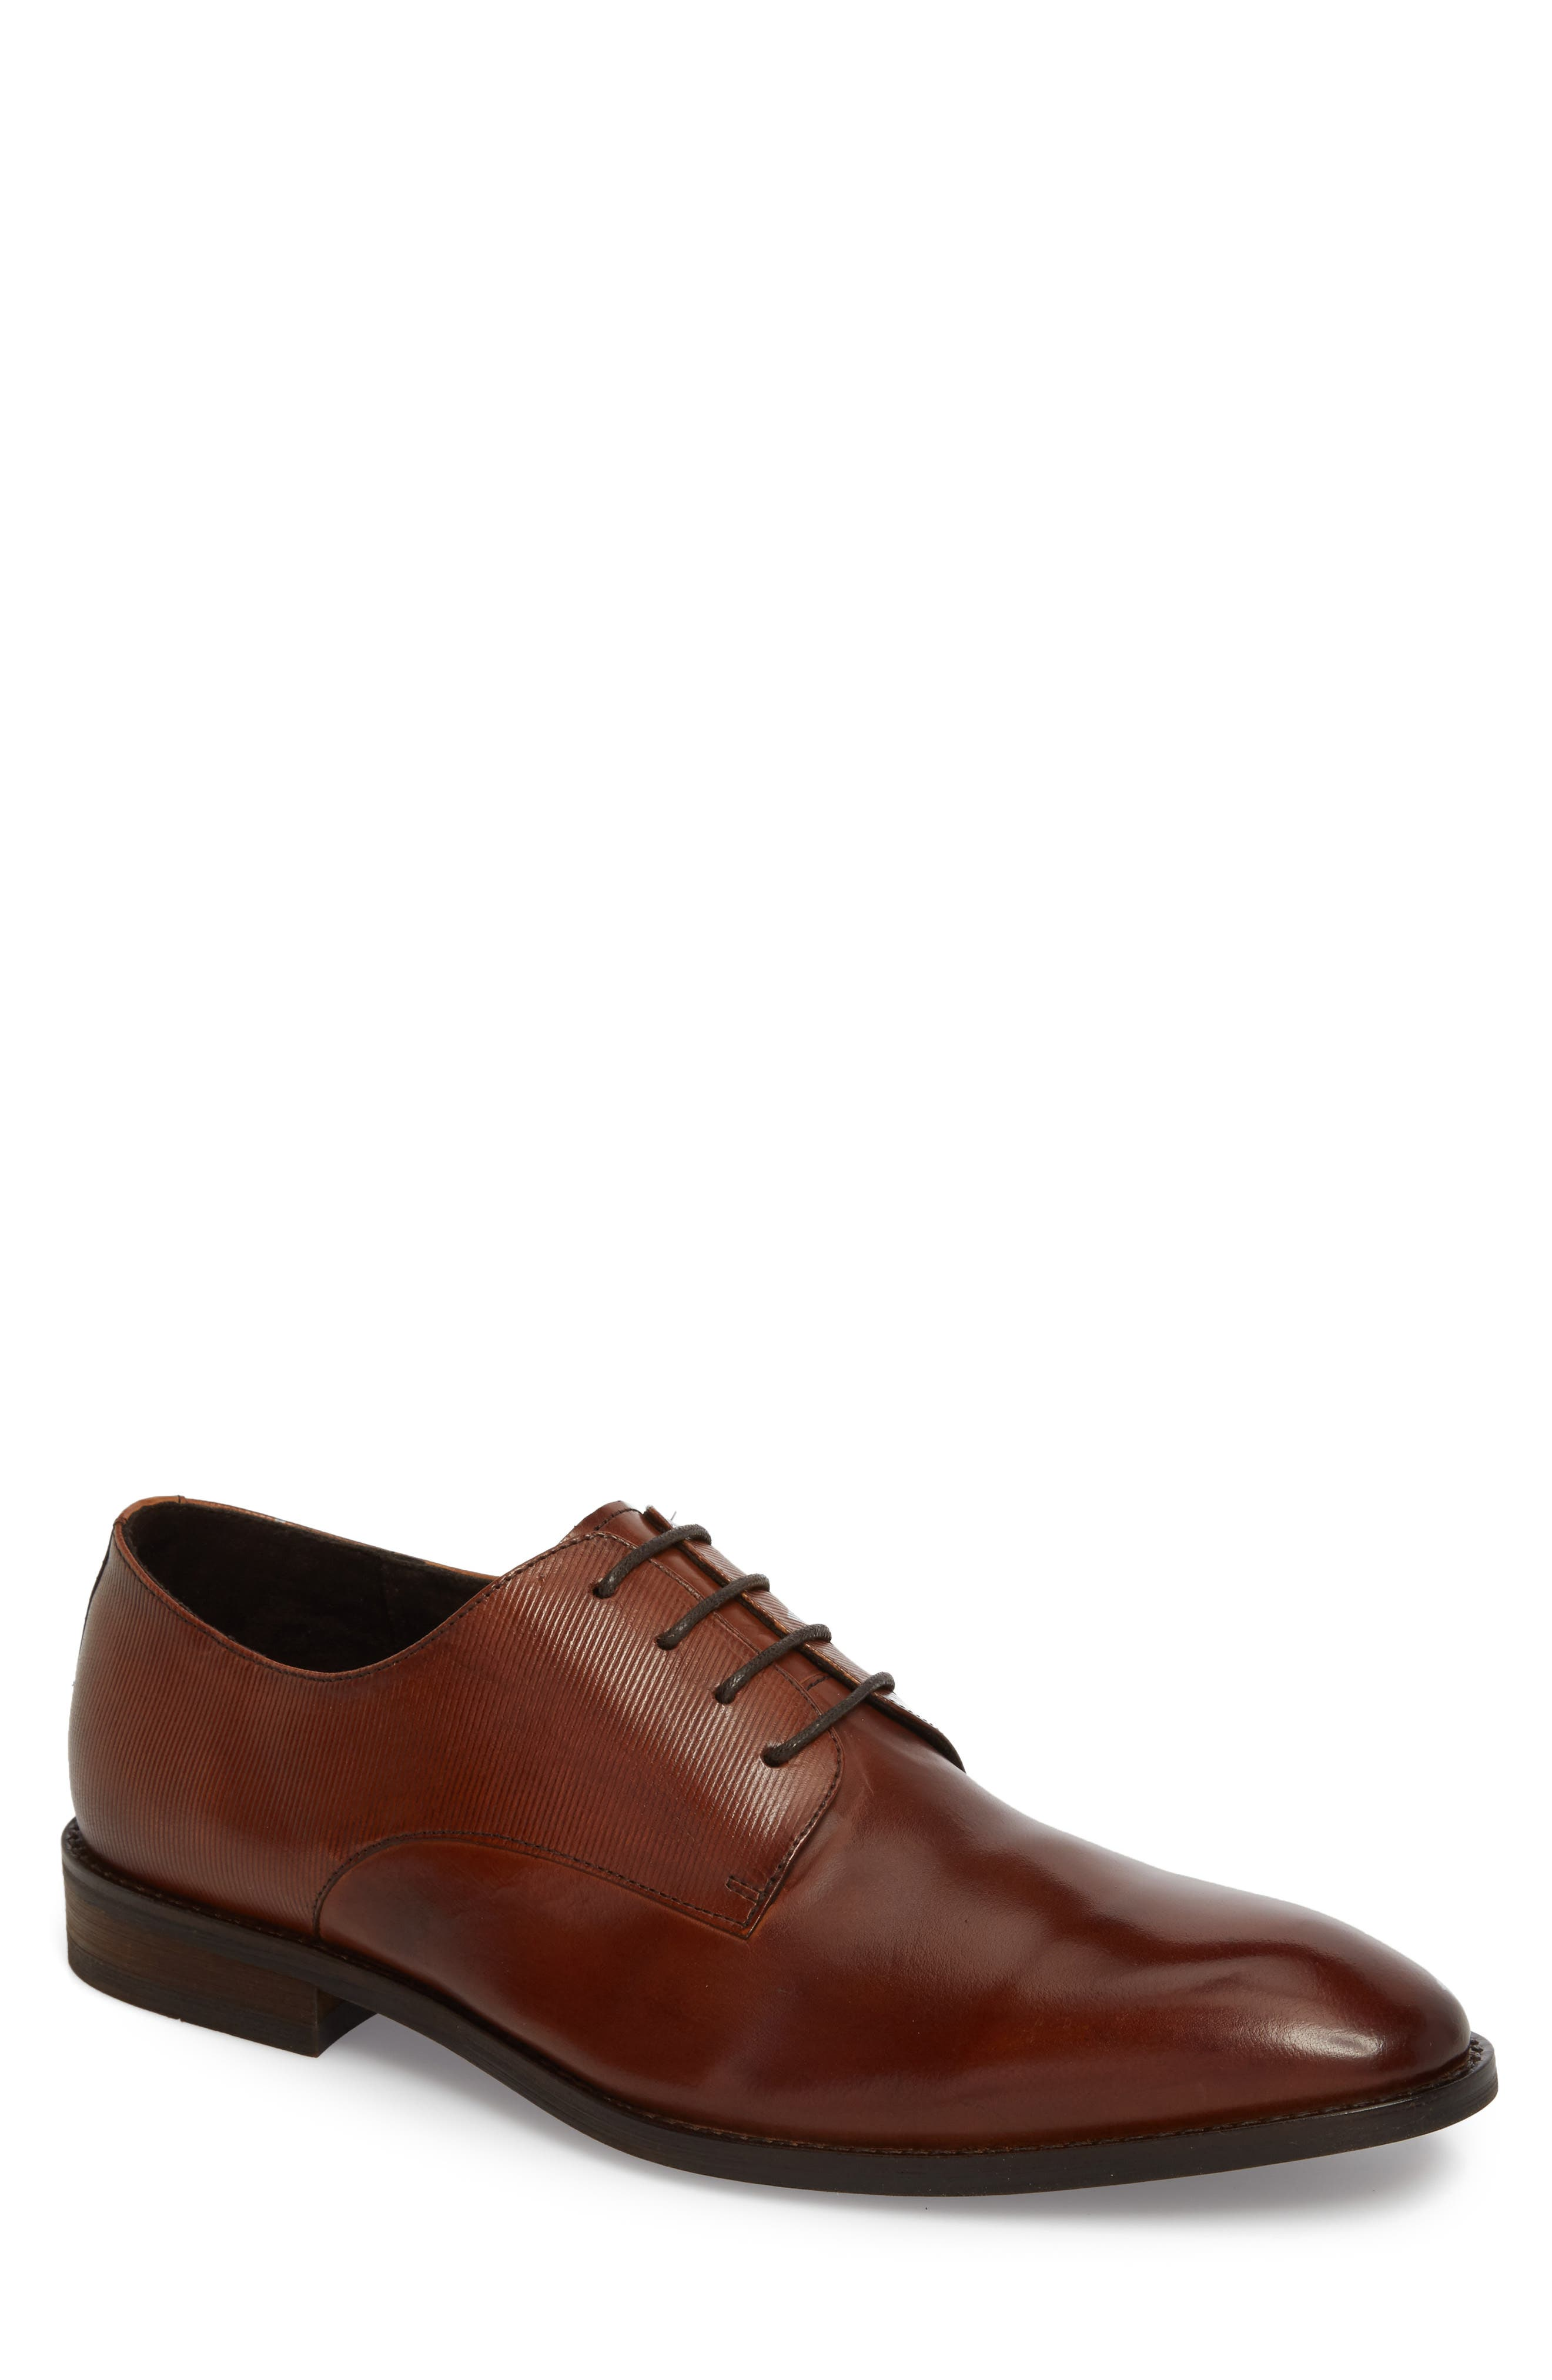 KENNETH COLE NEW YORK Courage Plain Toe Derby, Main, color, 200